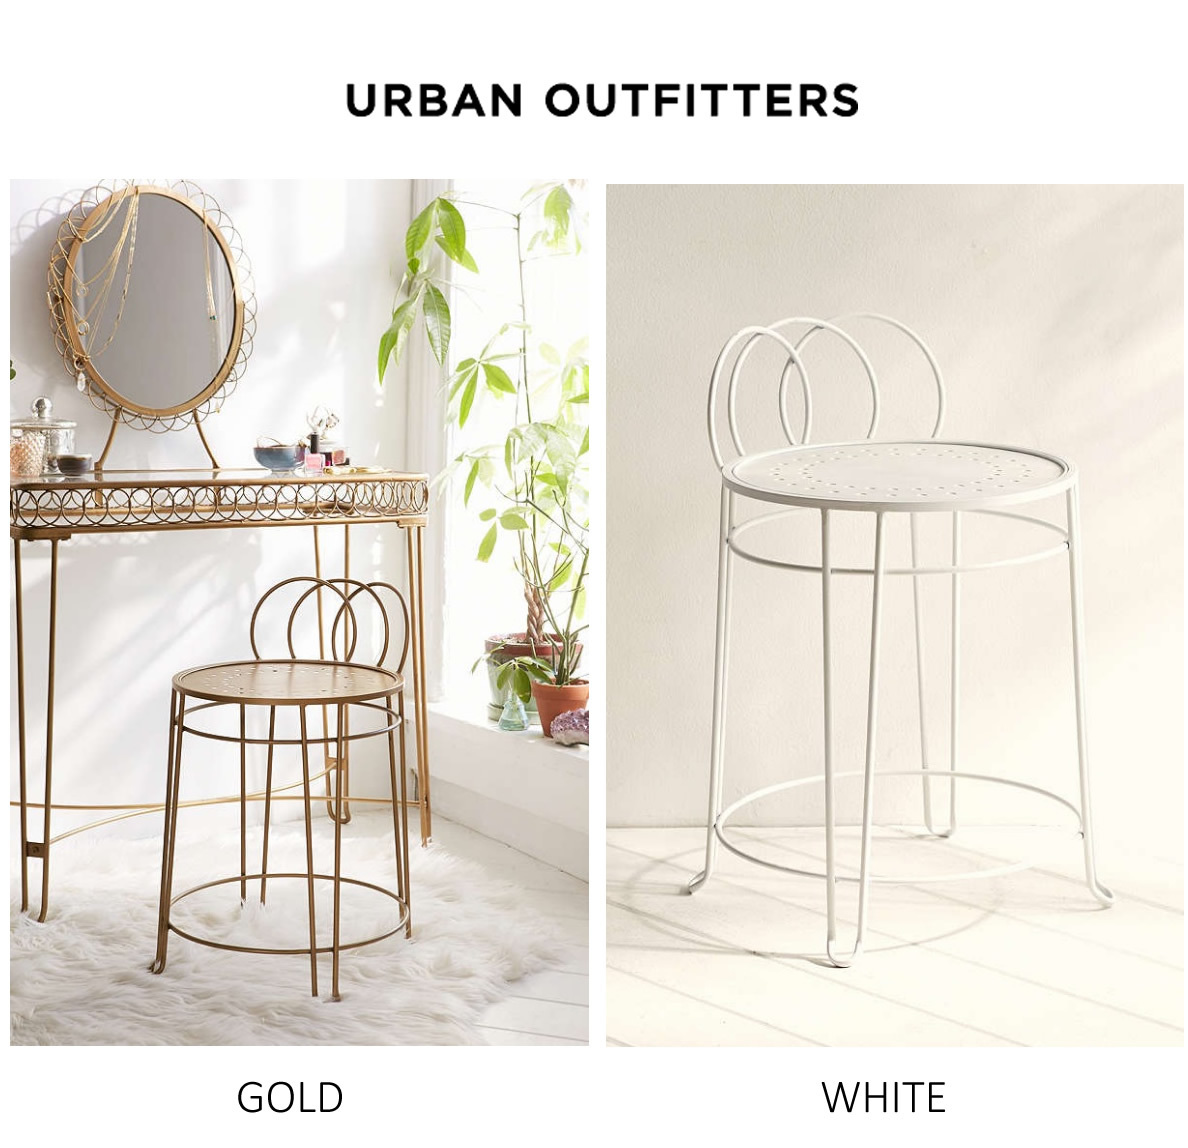 Urban Outfittersメイクアップドレッサー用スツール椅子